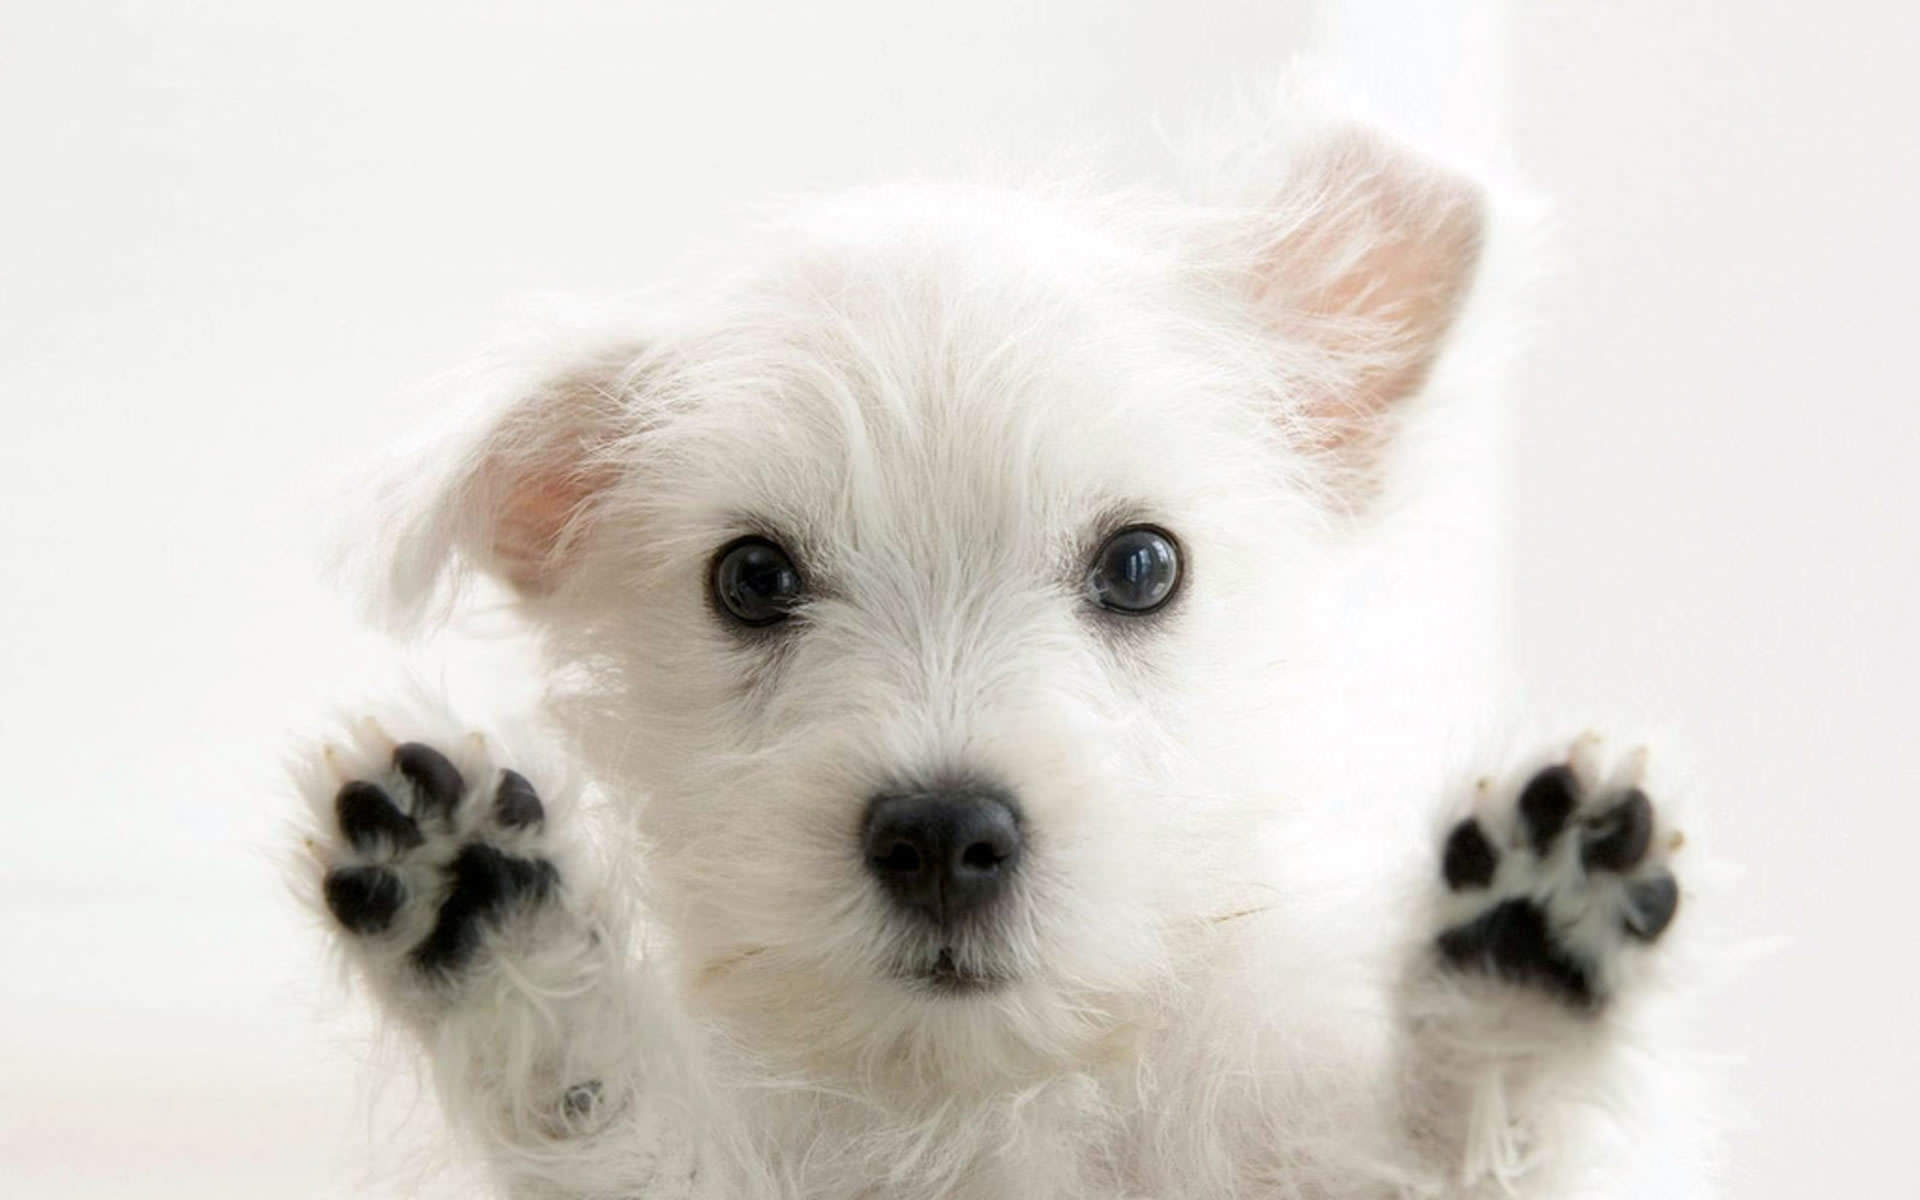 Dog Background Cute Animal wallpapers HD   198148 1920x1200